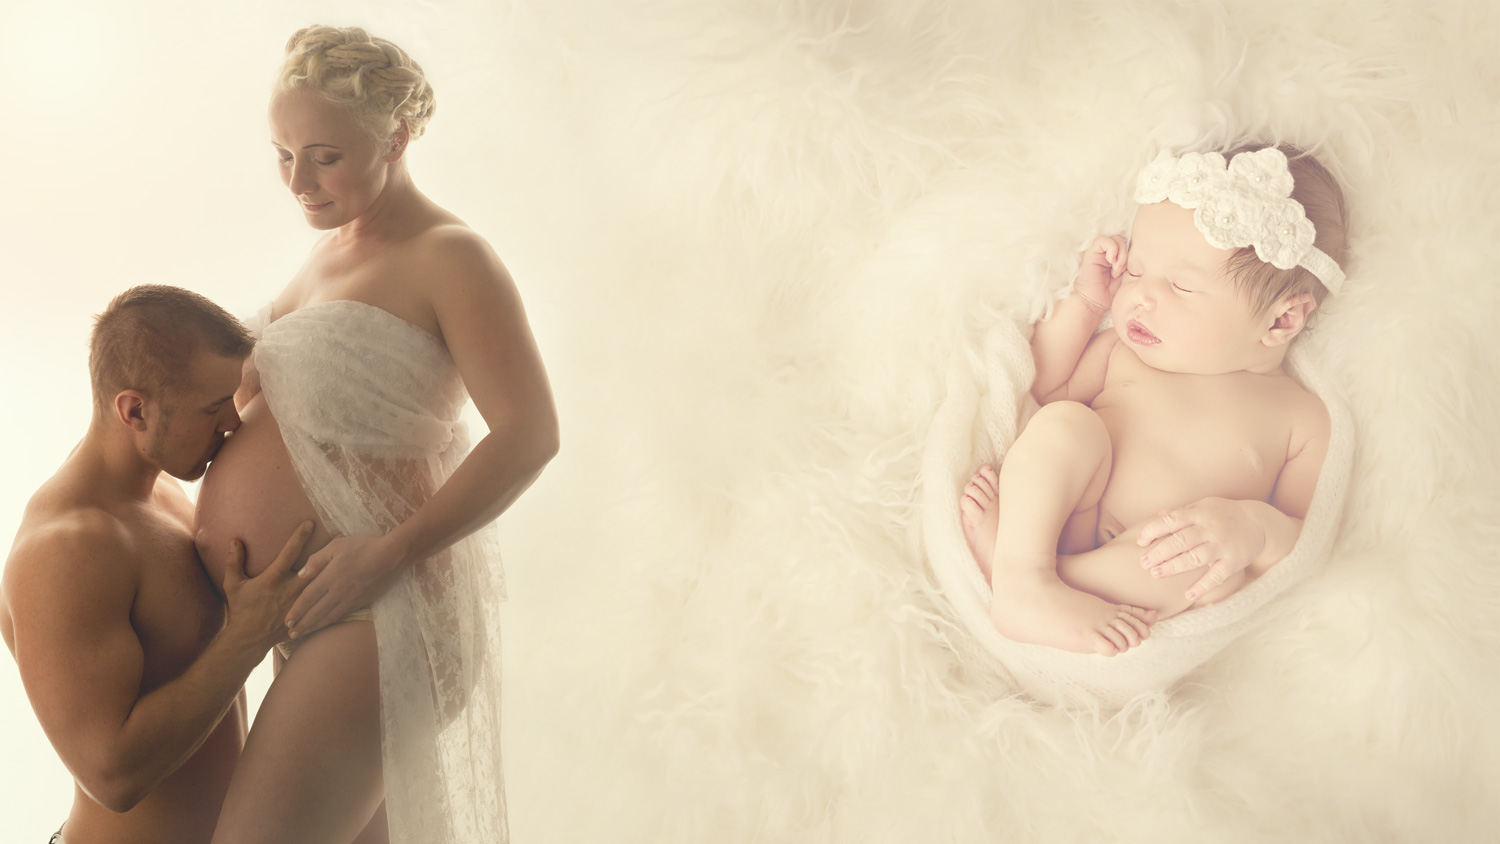 From Pregnancy to birth, the journey is a very personal one. We love to capture this magical time with parents and bump, then their beautiful newborn.  Maternity and Newborn Photography . www.yourfamilydeservethis.com